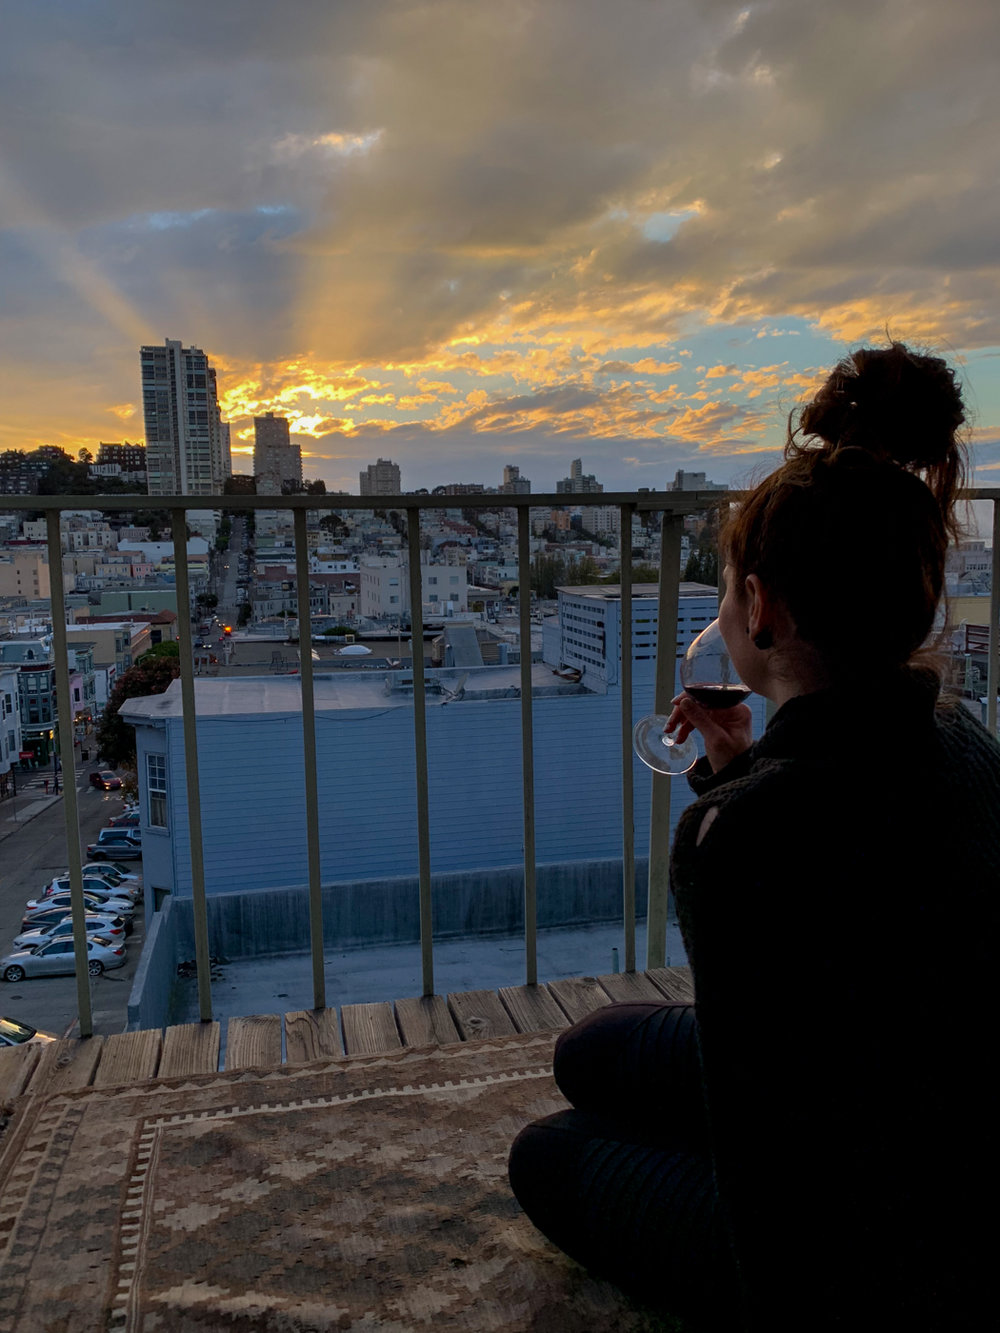 Suzanne, chilling after recording an episode. Gorgeous sunset…